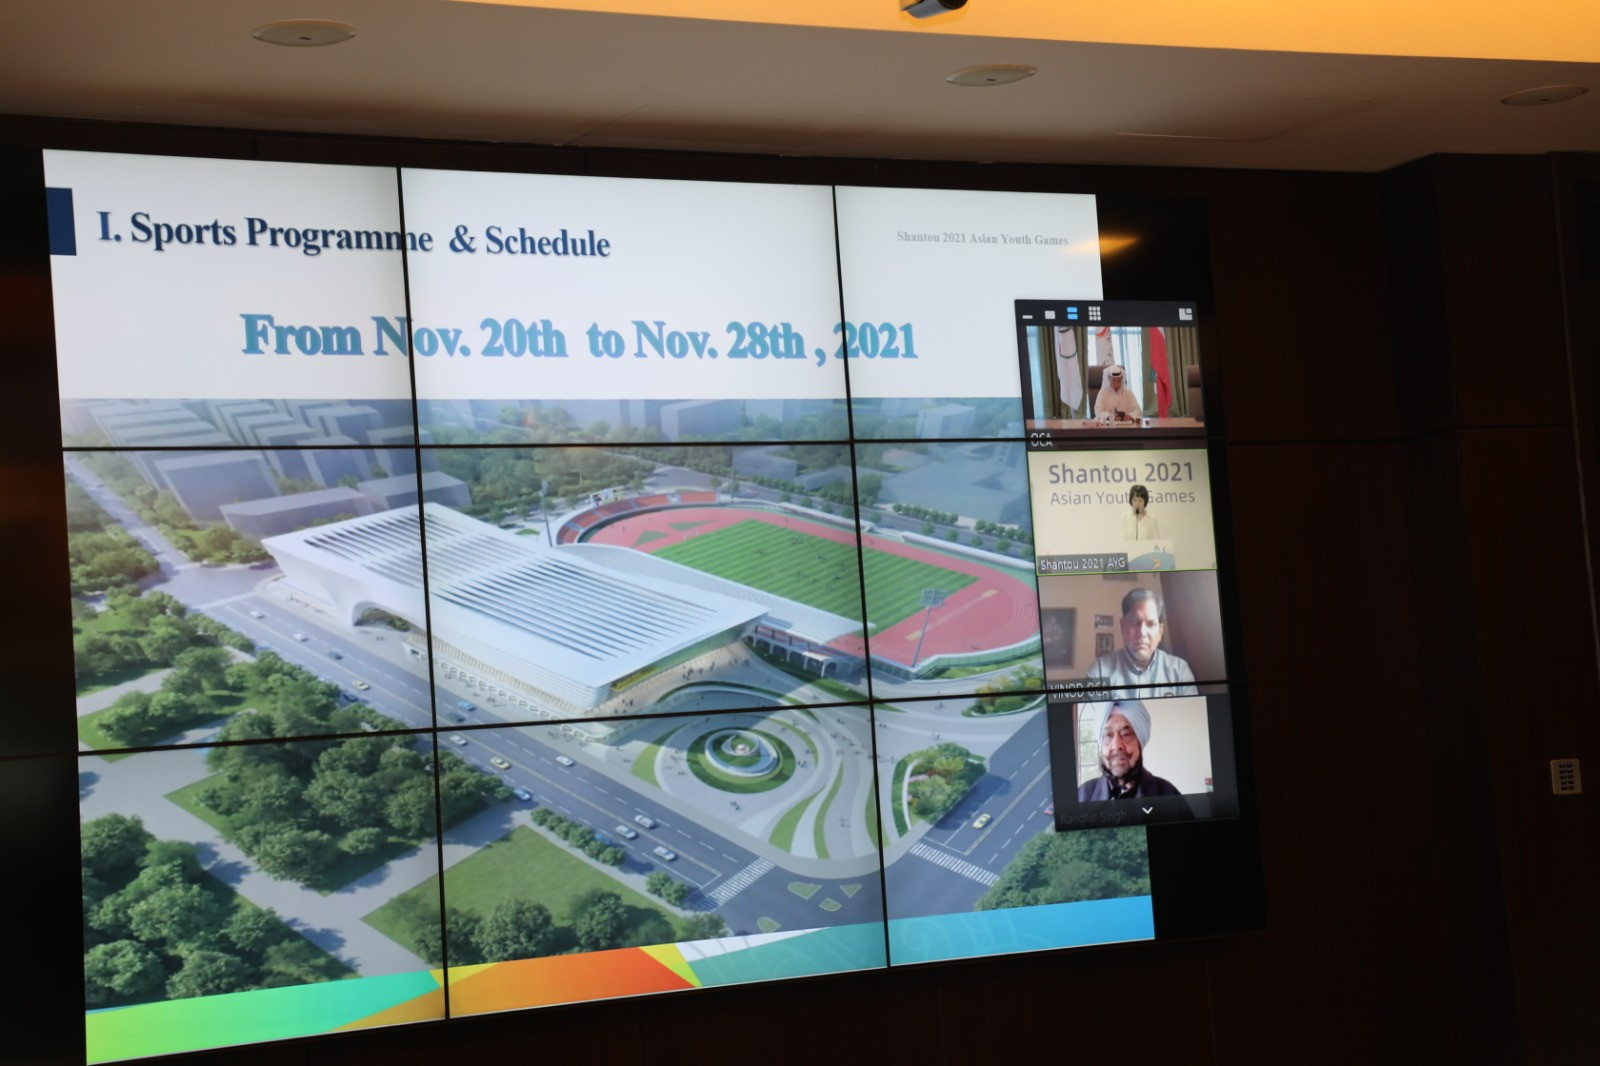 A Coordination Committee meeting was held for Shantou 2021 ©OCA